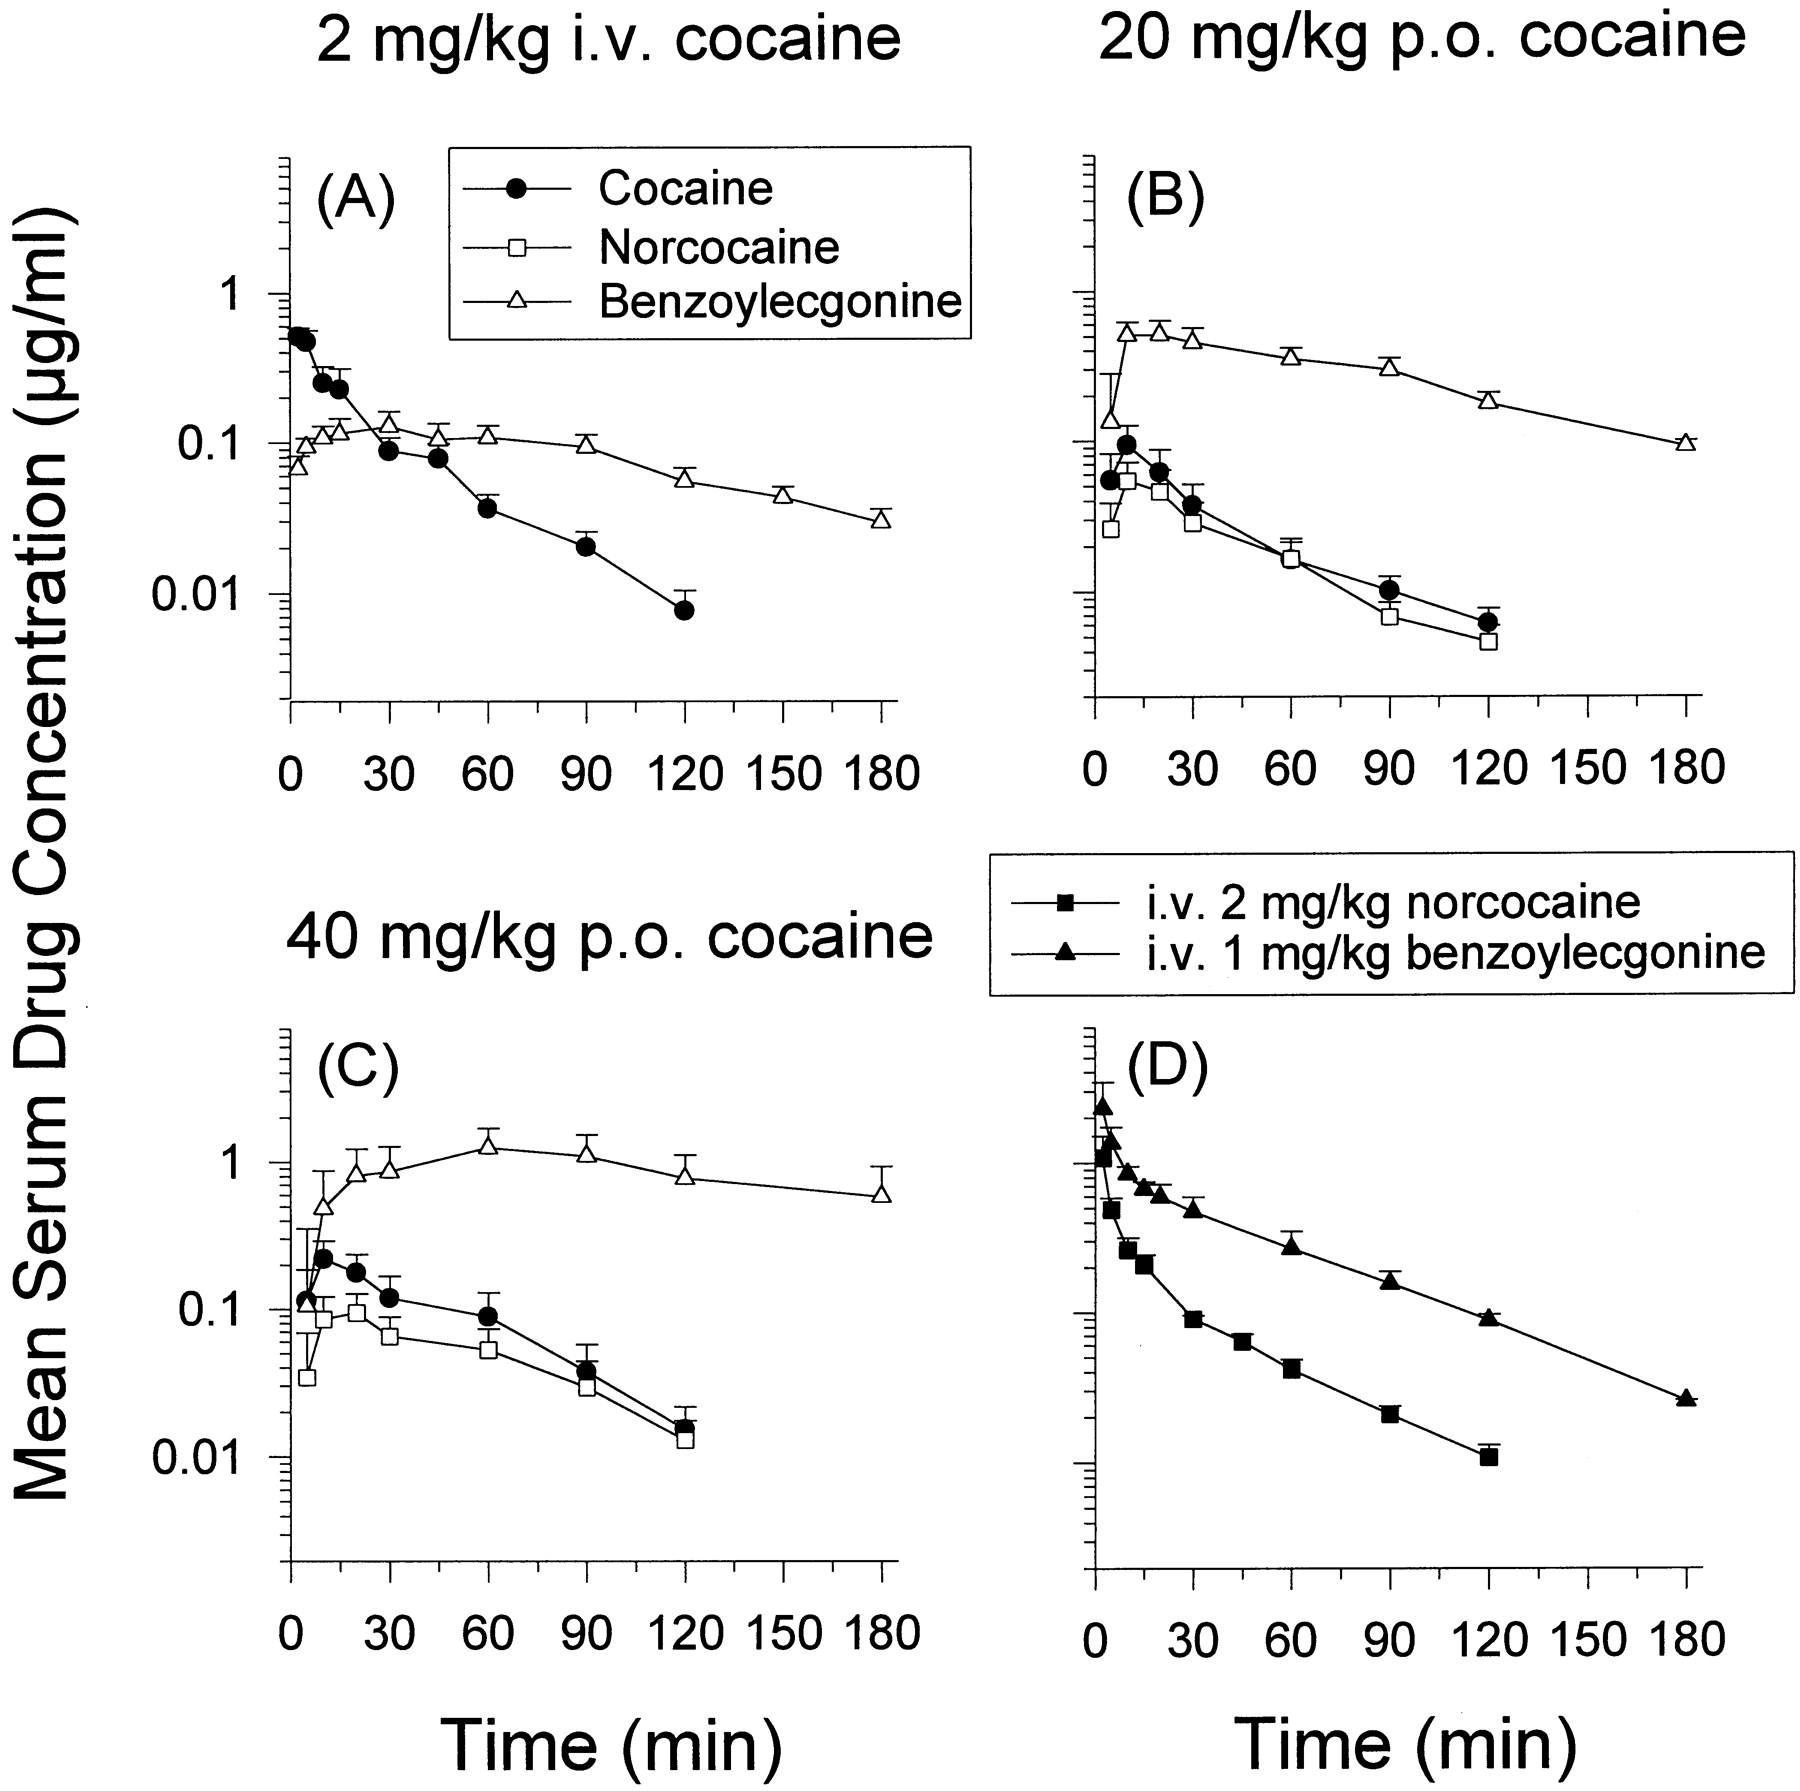 Simultaneous Pharmacokinetic Modeling of Cocaine and Its Metabolites